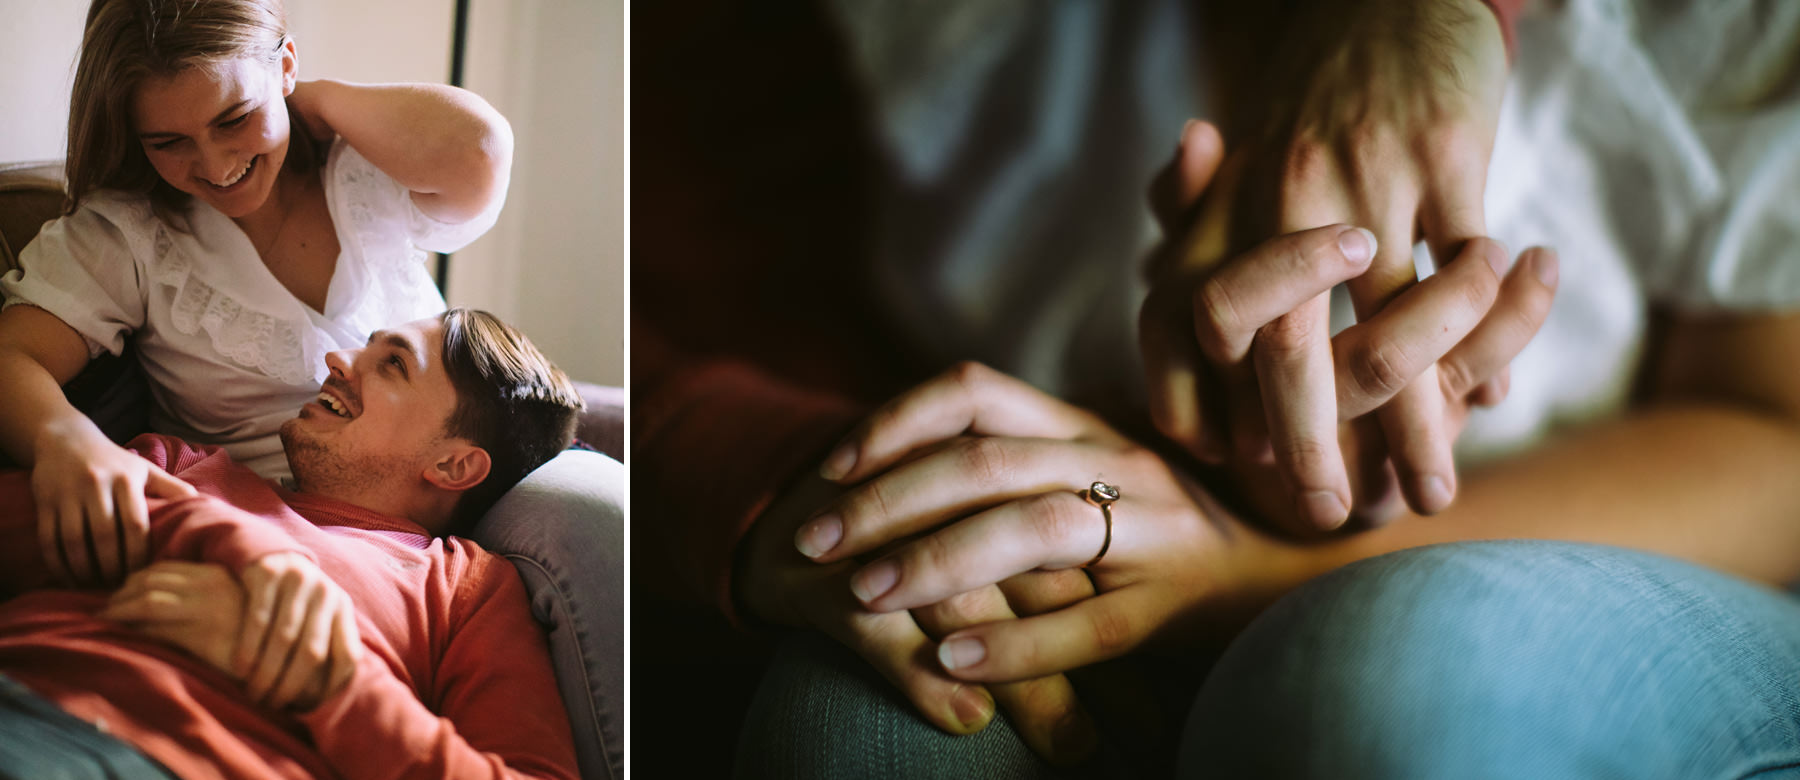 201_In Home Intimate Engagement Session Kansas City, Missouri_Kindling Wedding Photography.JPG